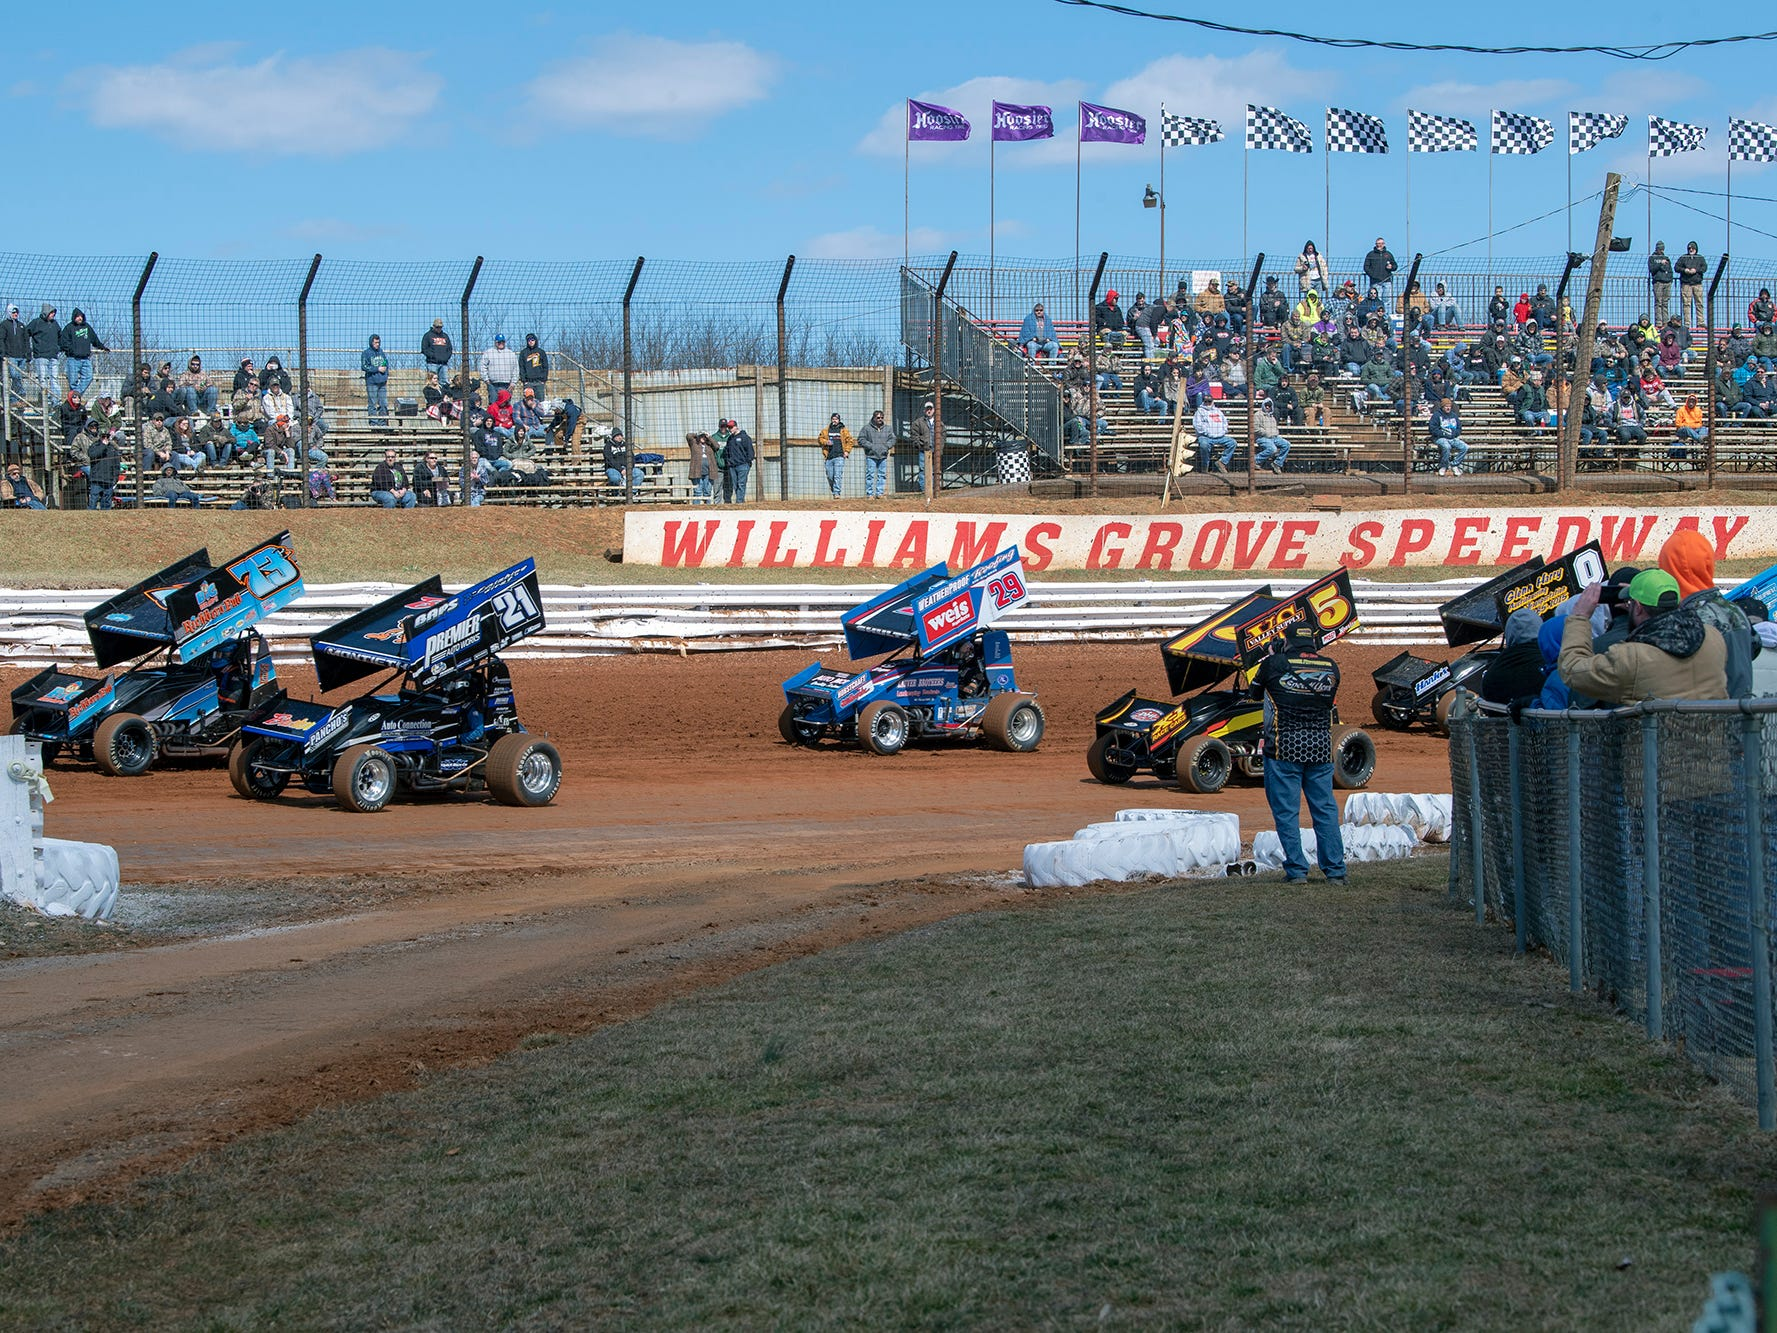 Cars round the track warming up for the Williams Grove season opener for 410 sprints Sunday March 17, 2019.